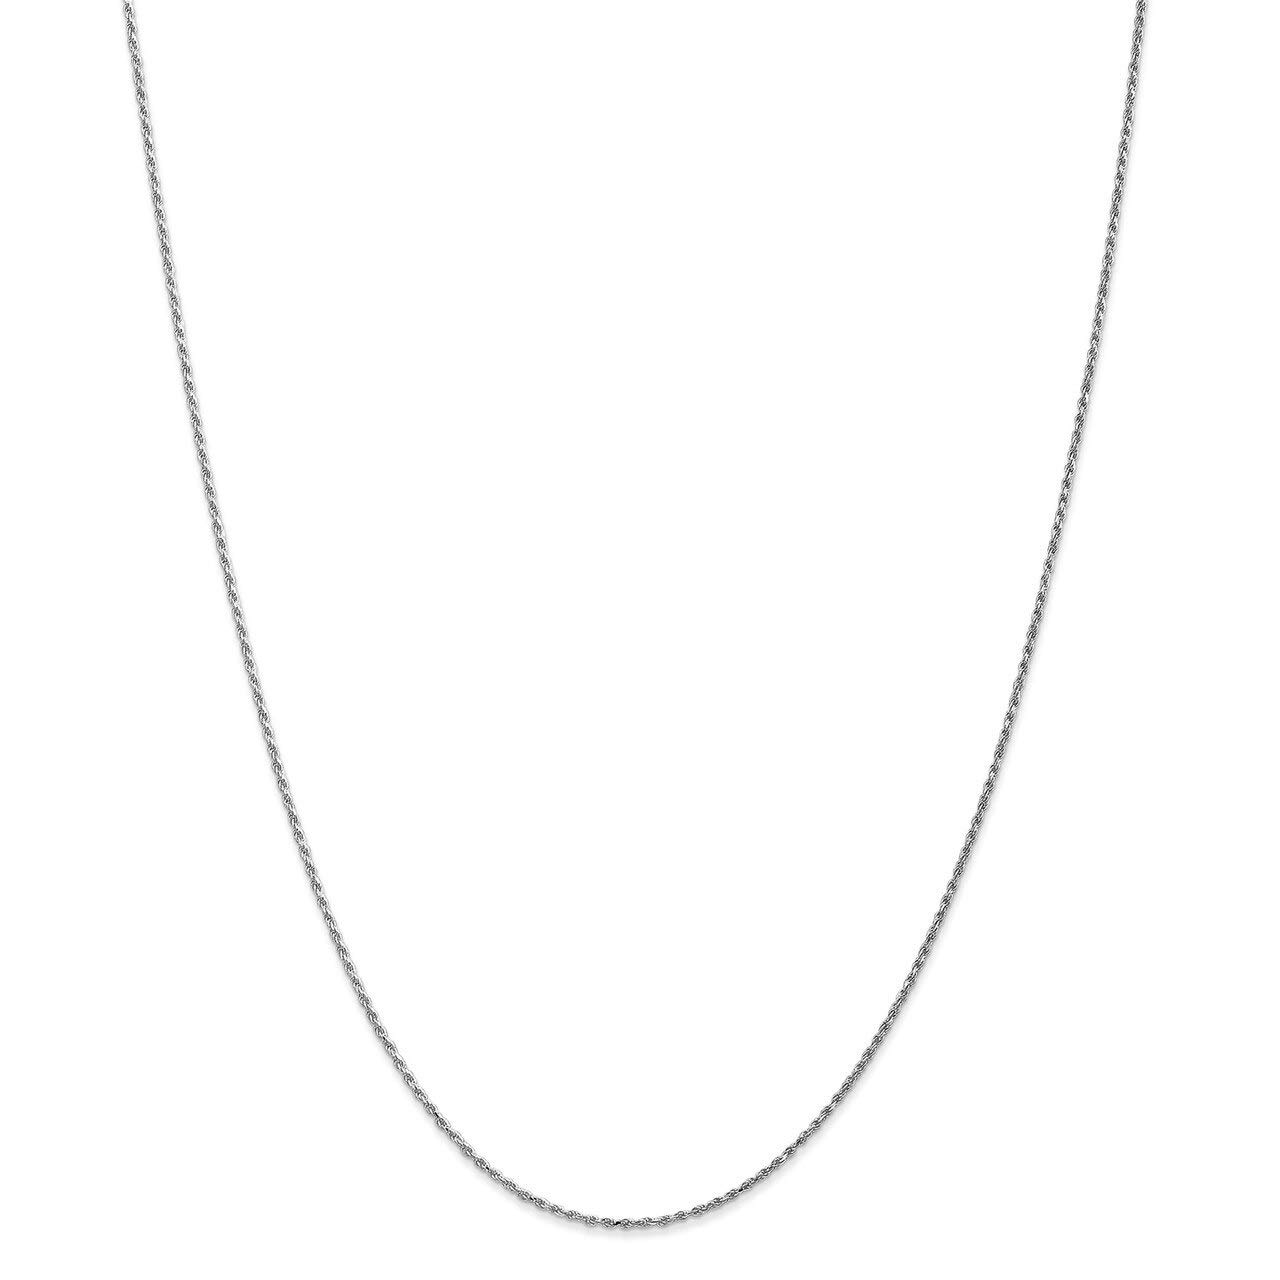 Lex /& Lu 10k White Gold 1.2mm Machine Made D//C Rope Chain Necklace or Bracelet